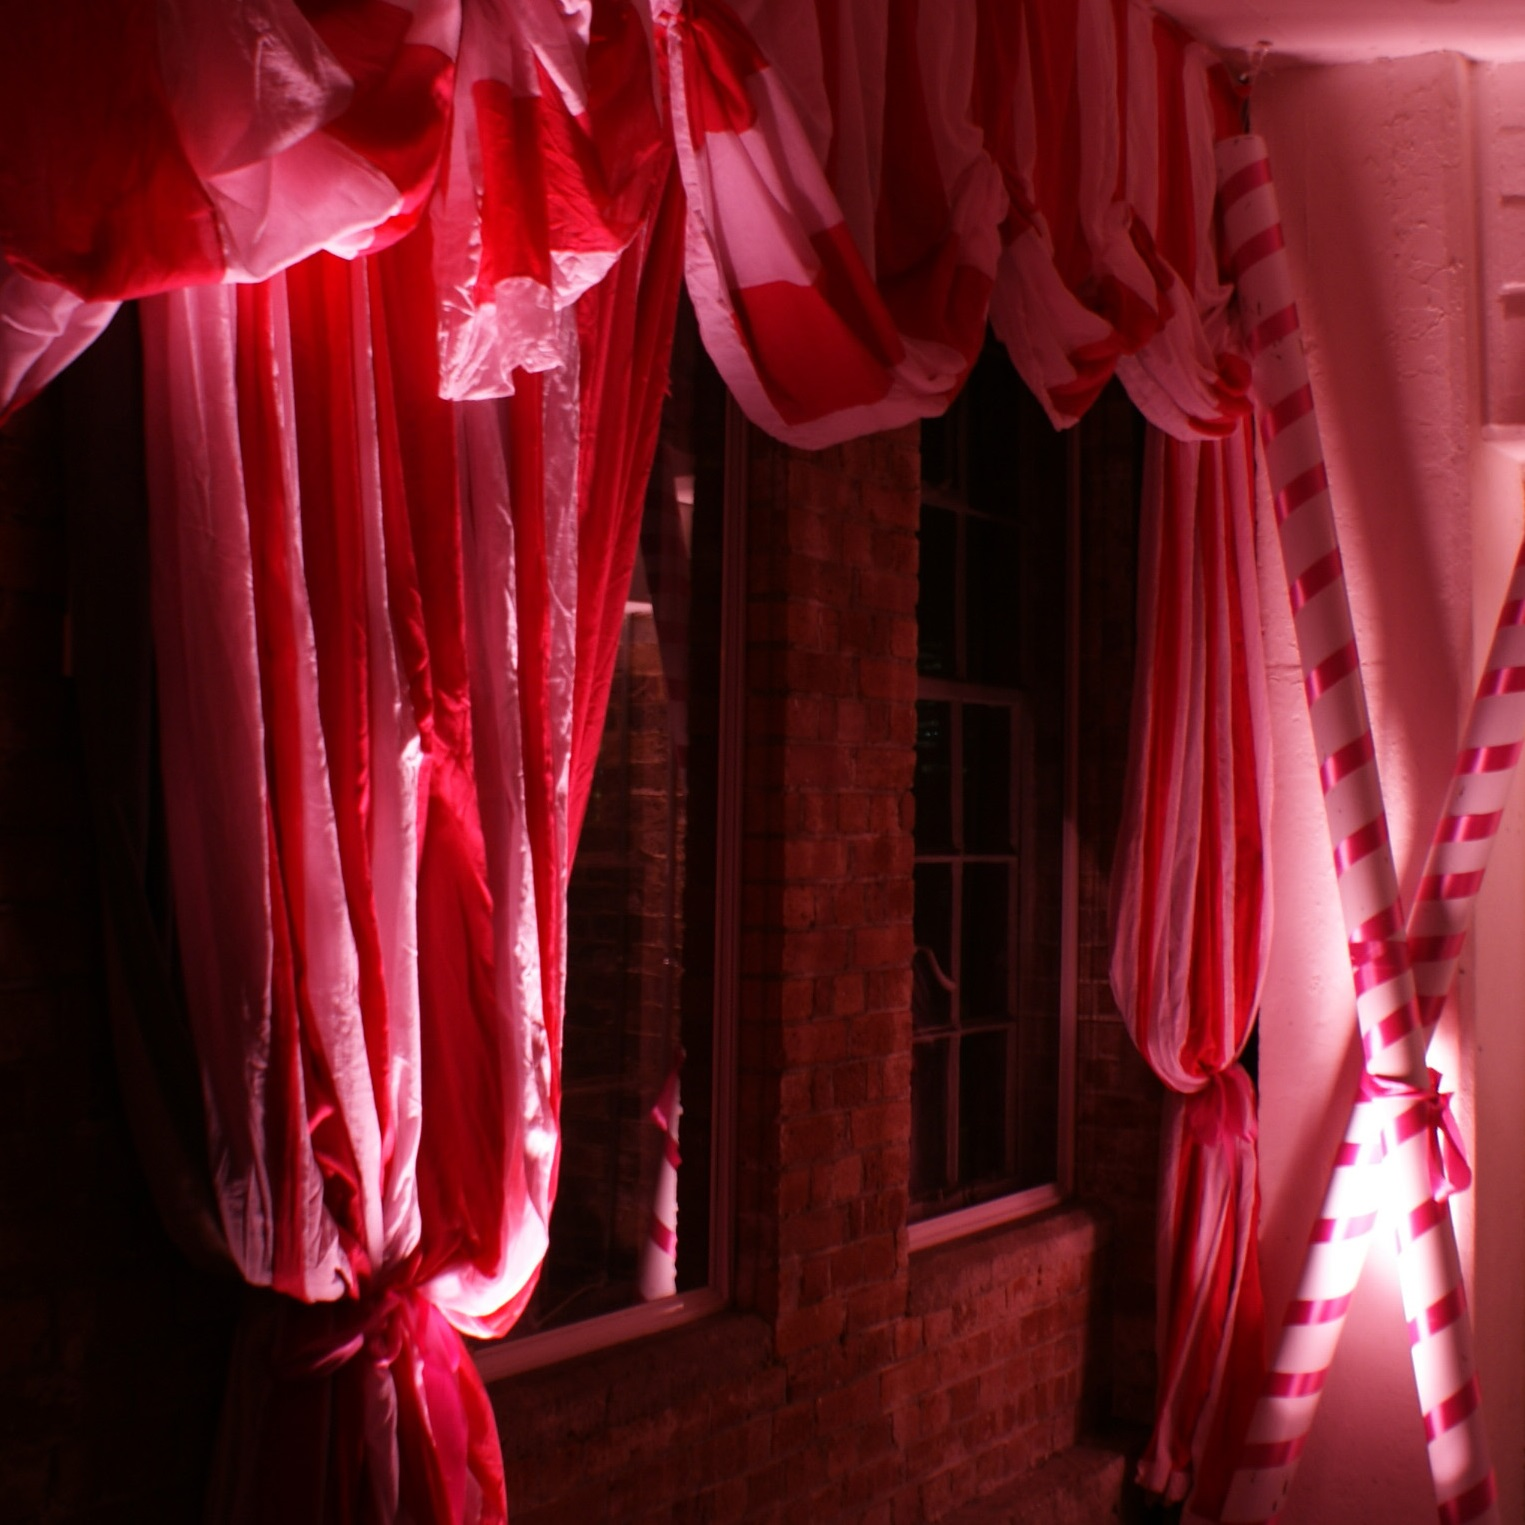 An illuminated pair of pink curtains and giant candy canes